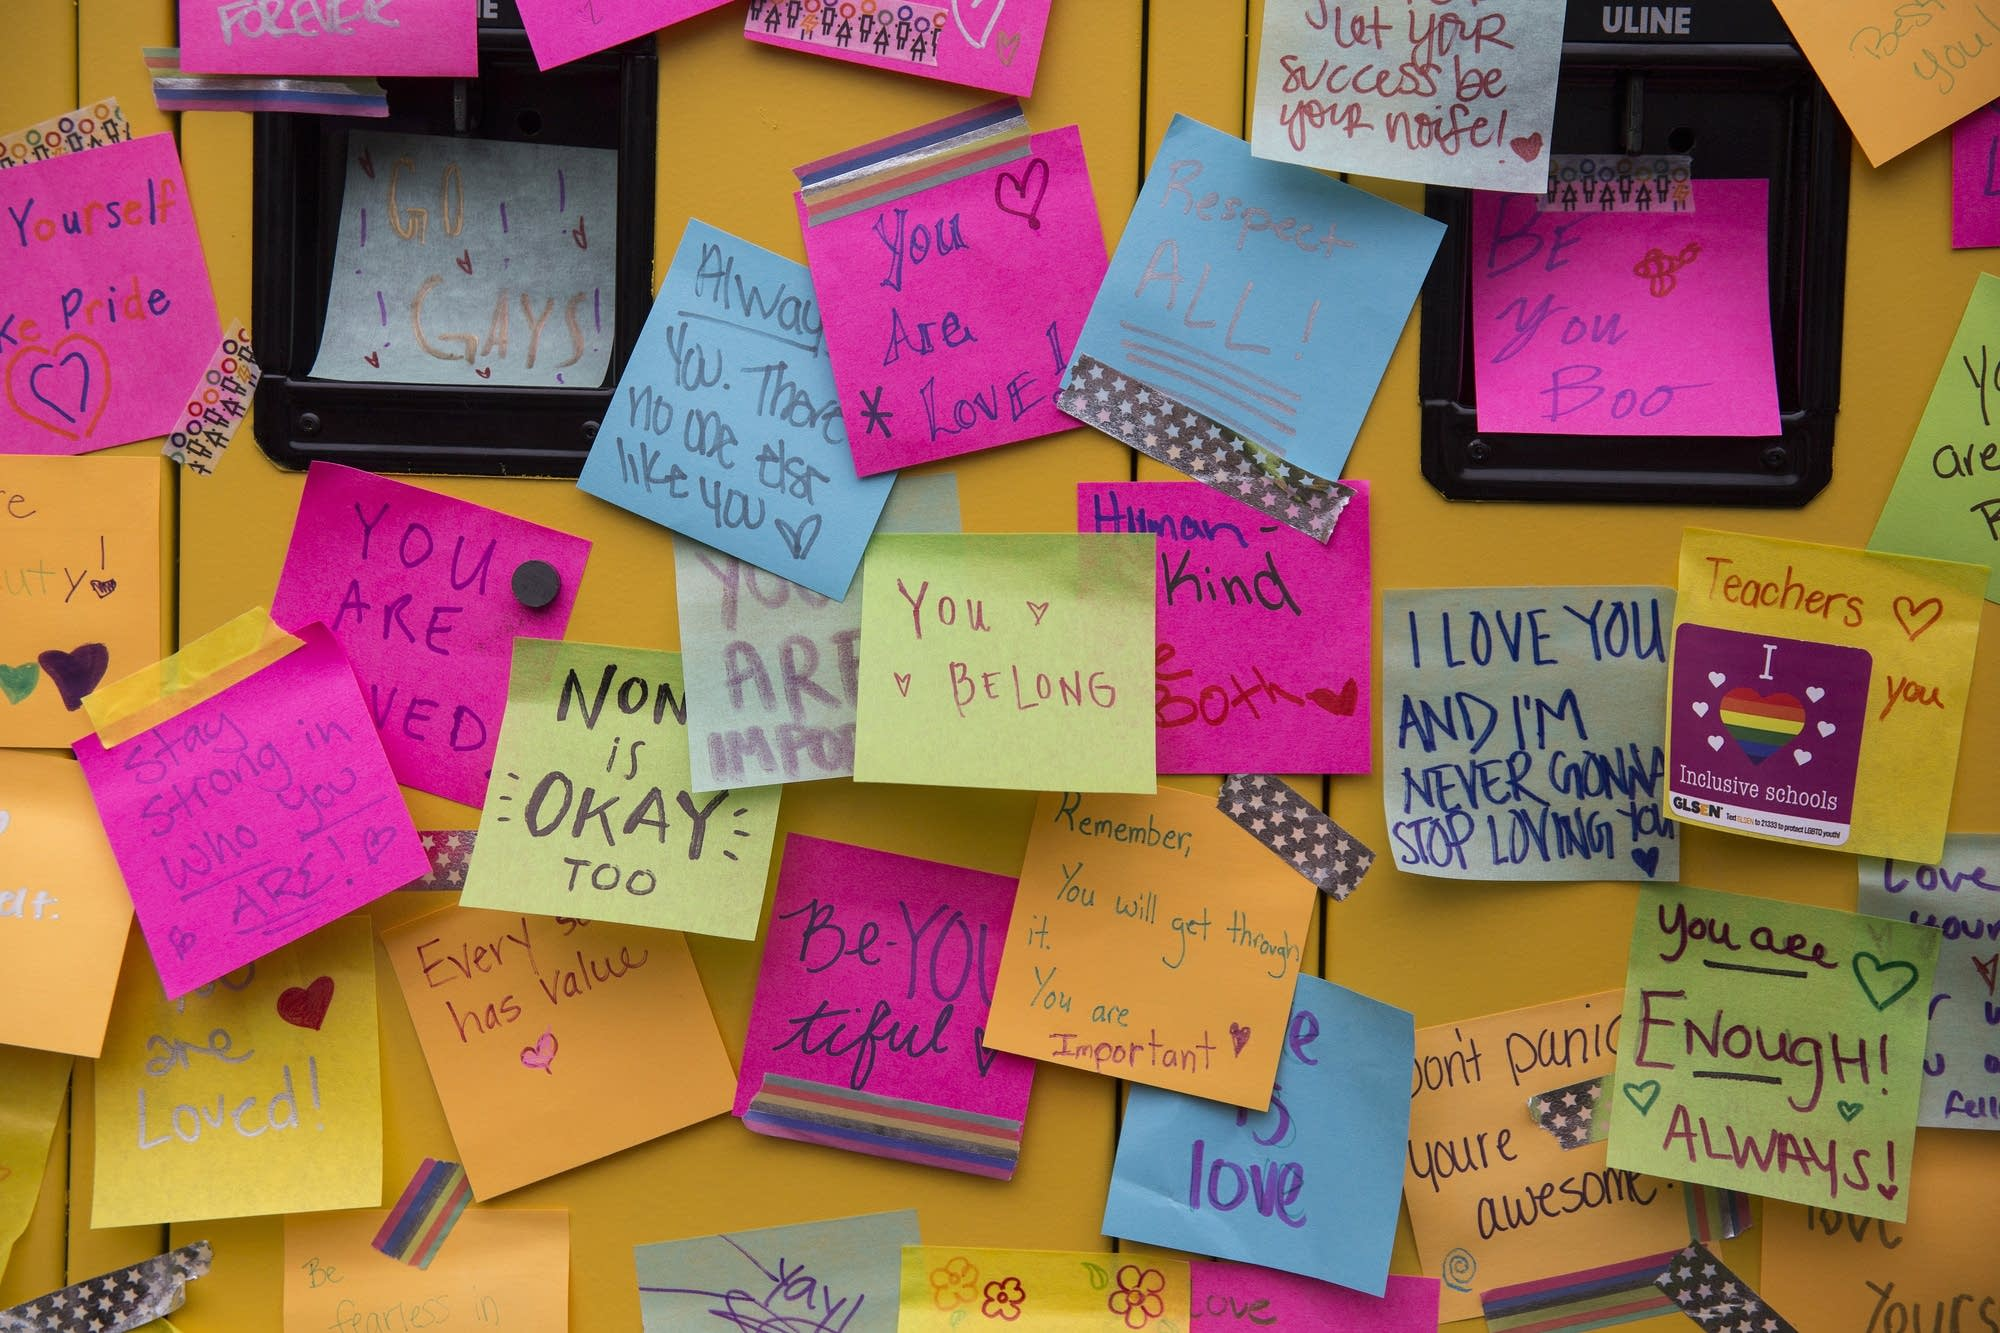 An interactive installation allowed people to leave notes of support.